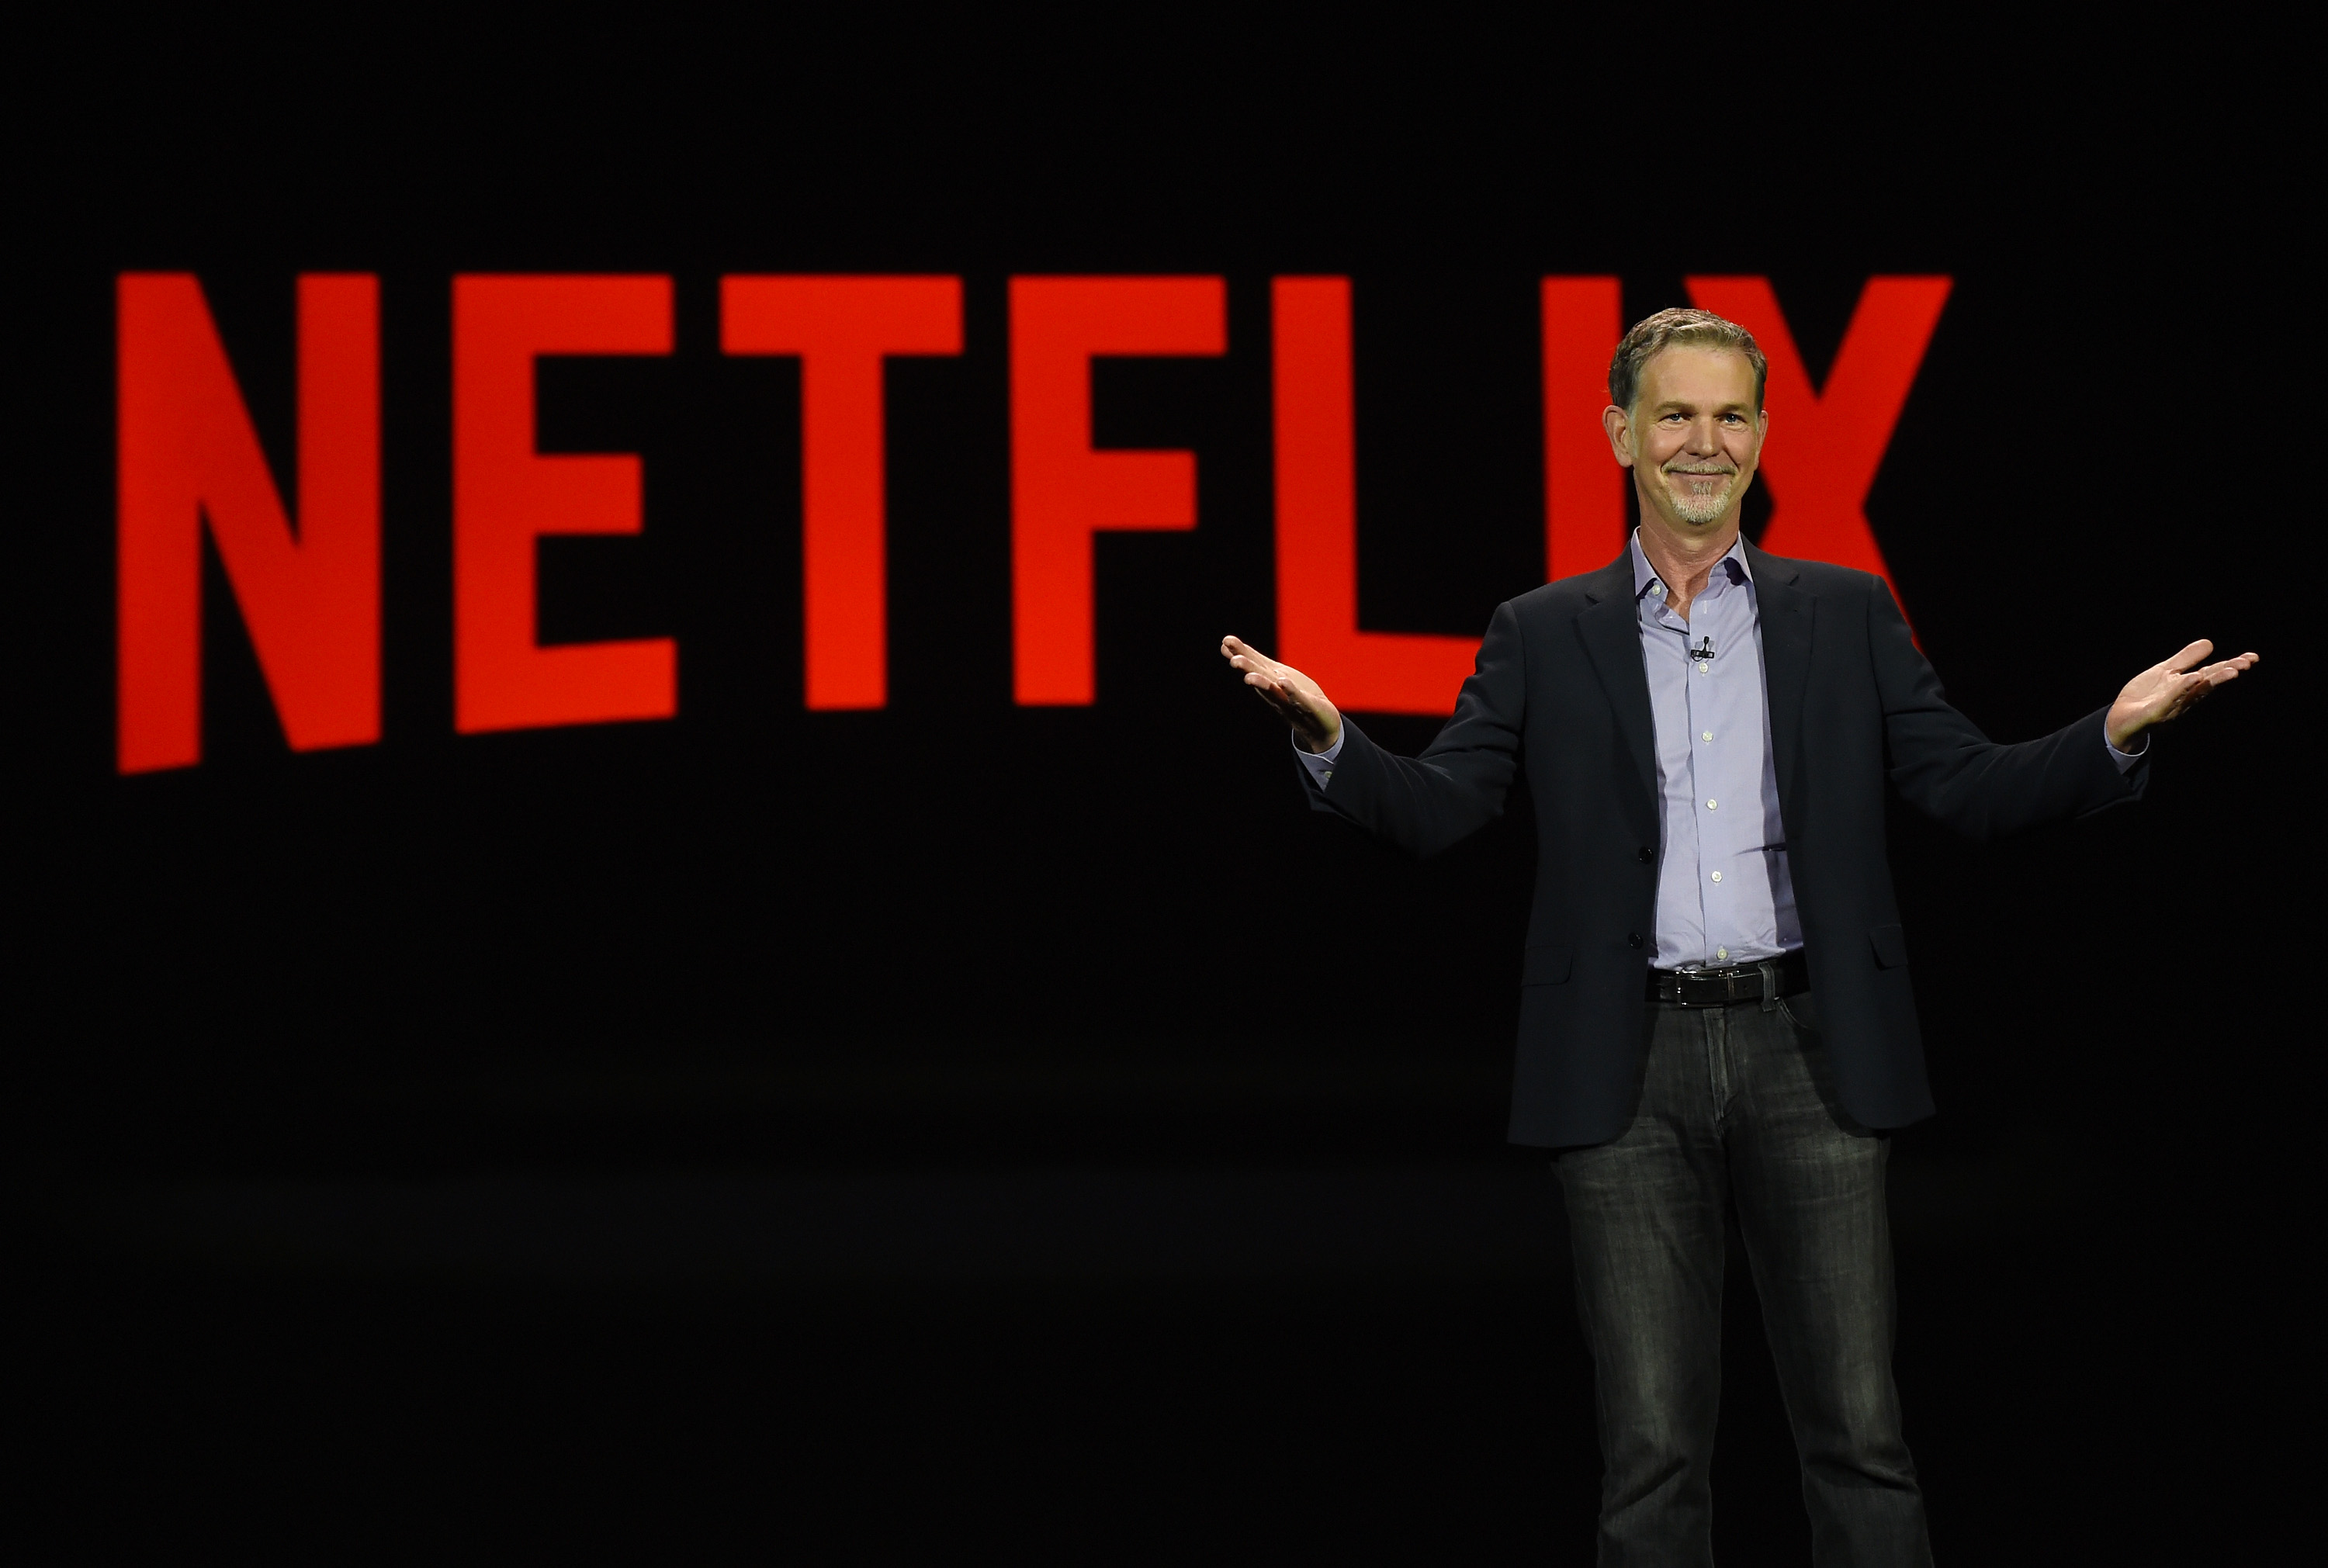 """Netflix CEO Reed Hastingsstands in front of a sign that reads """"Netflix."""""""